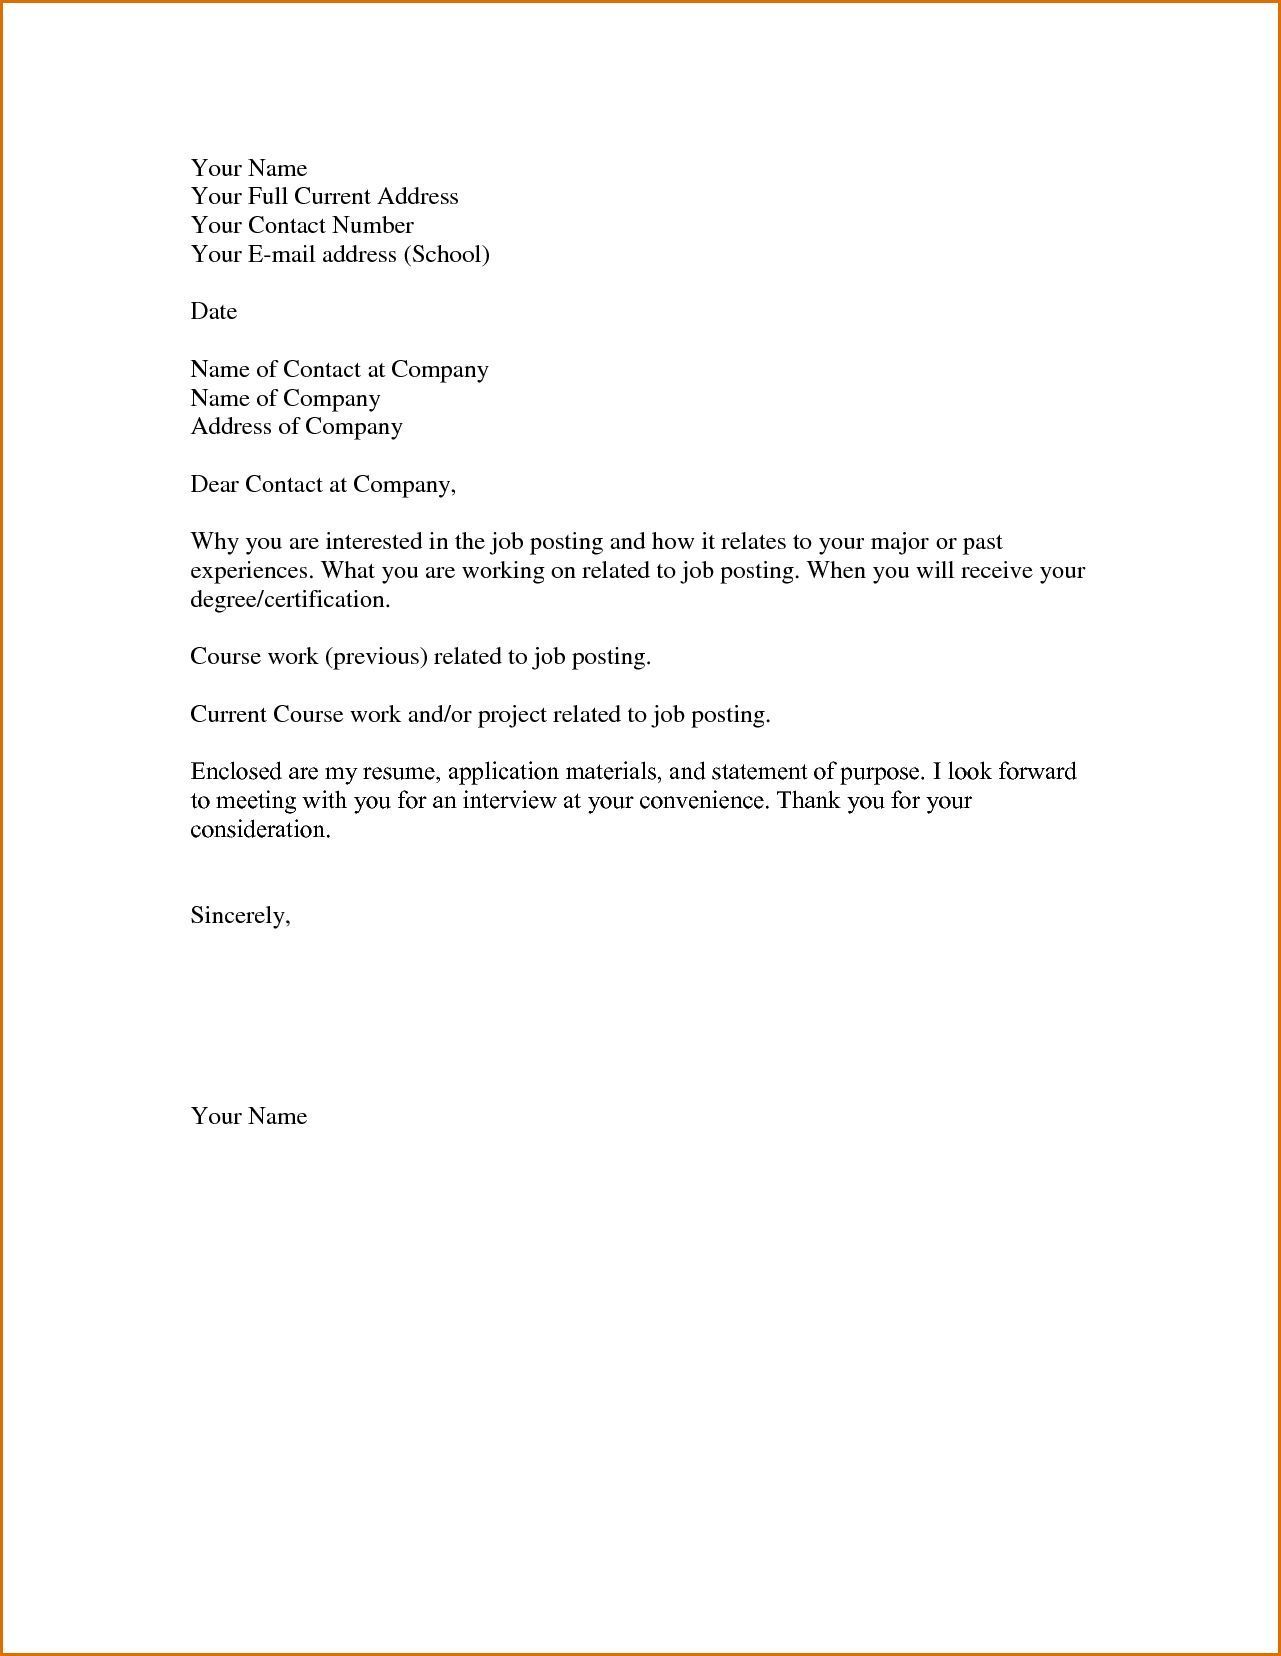 Simple Cover Letter In 2020 Simple Cover Letter Job Cover Letter Cover Letter Example Easy cover letter for resume